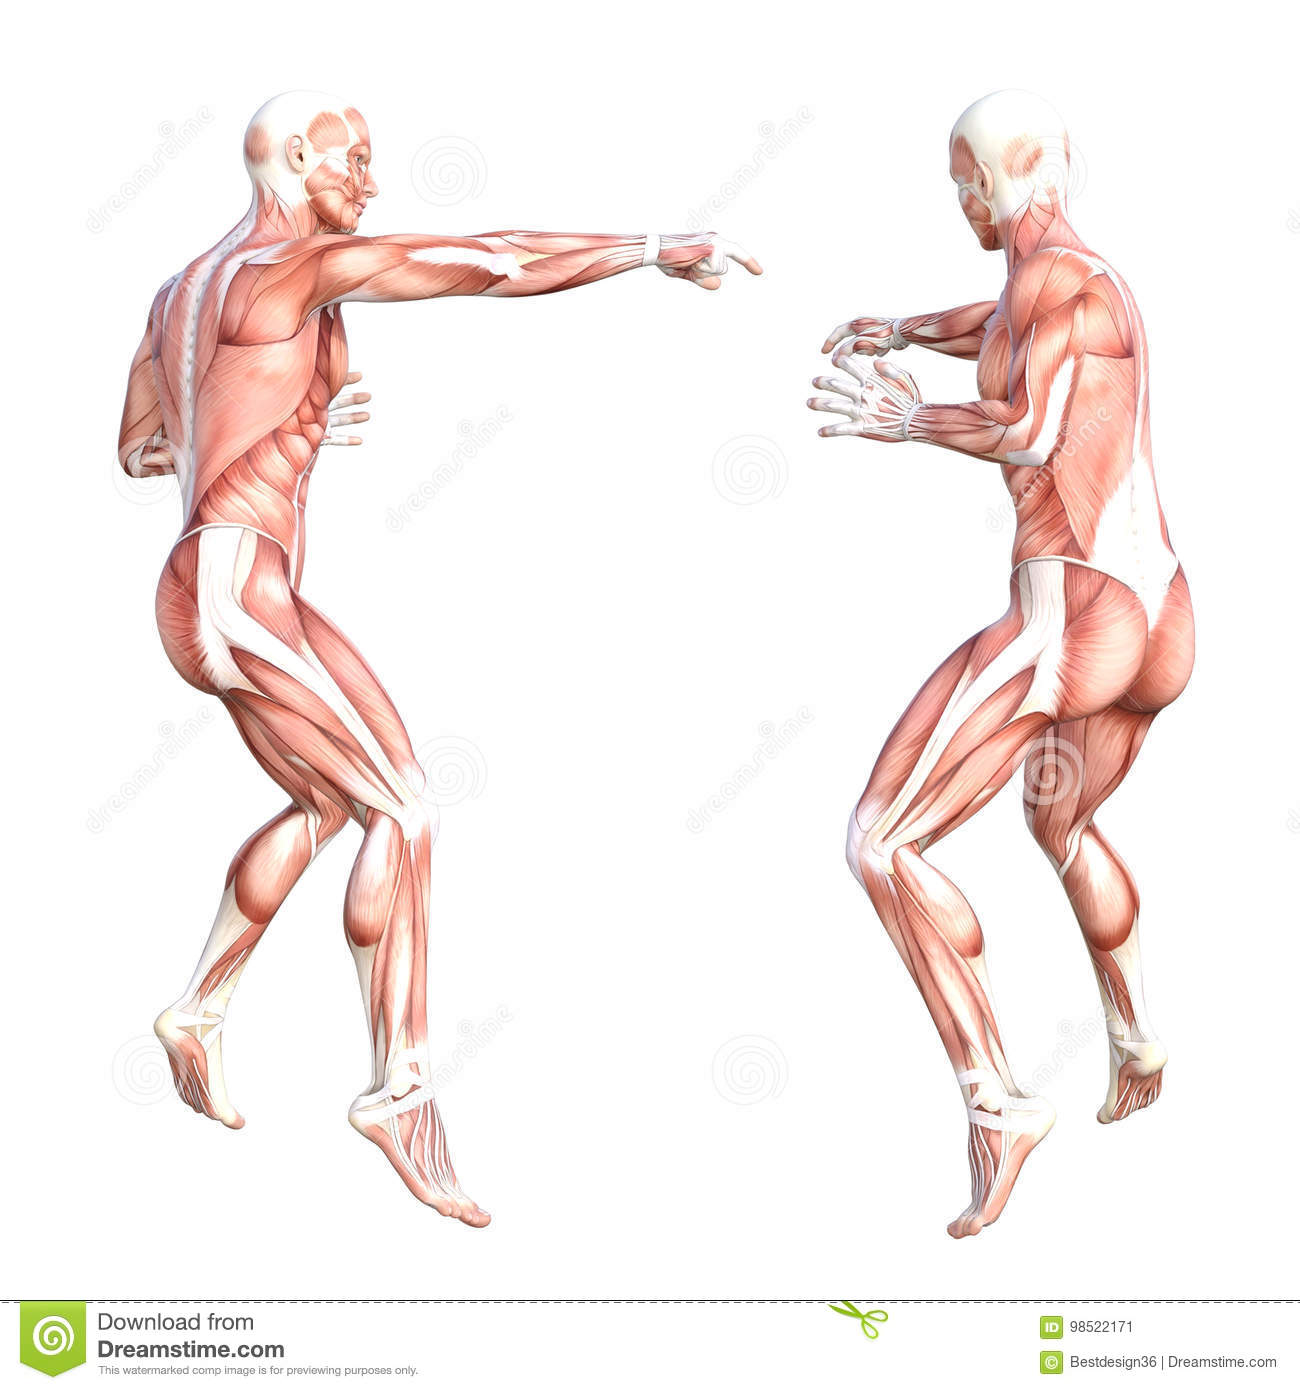 Hhealthy Skinless Human Body Muscle System Set Stock Illustration